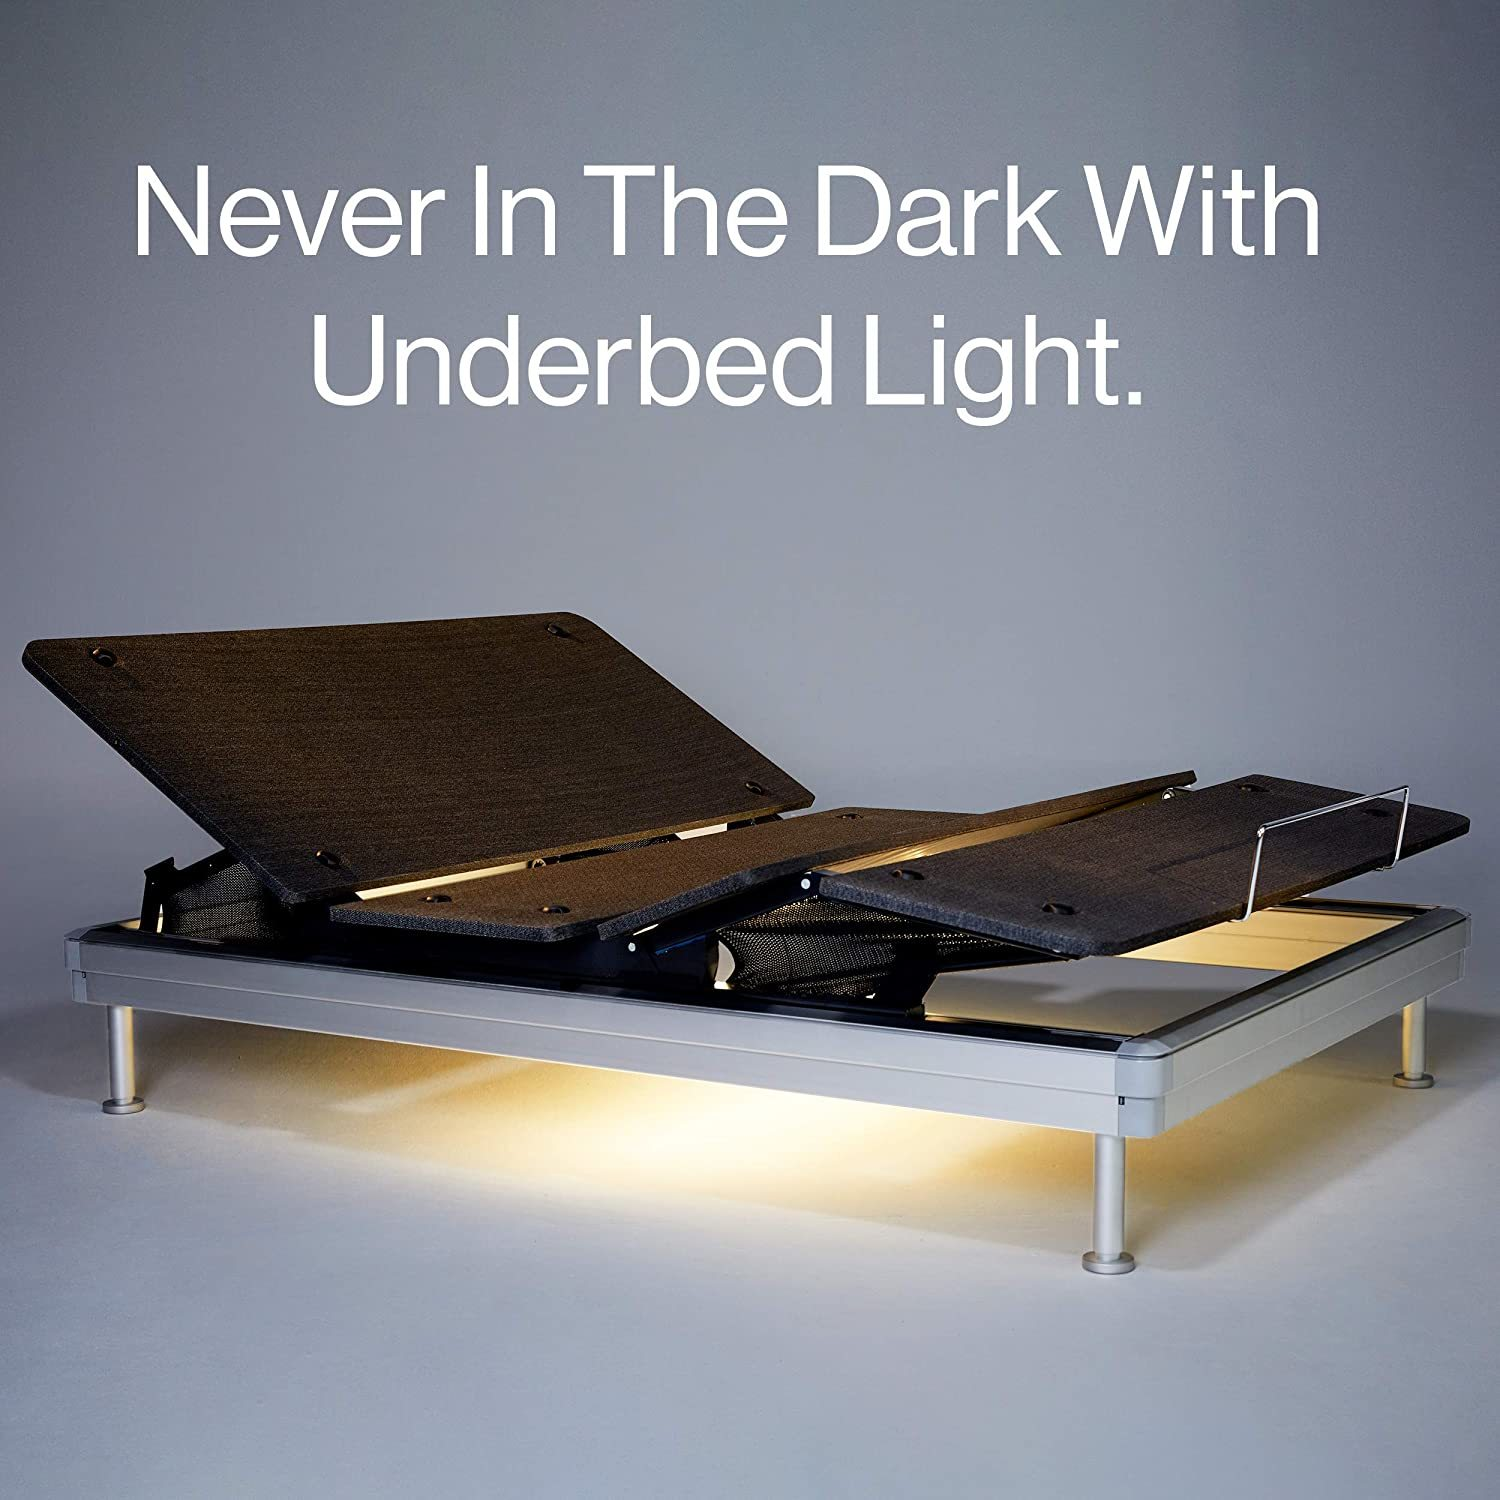 Yaasa Luxe Adjustable Bed Reviews - Under-bed-lighting